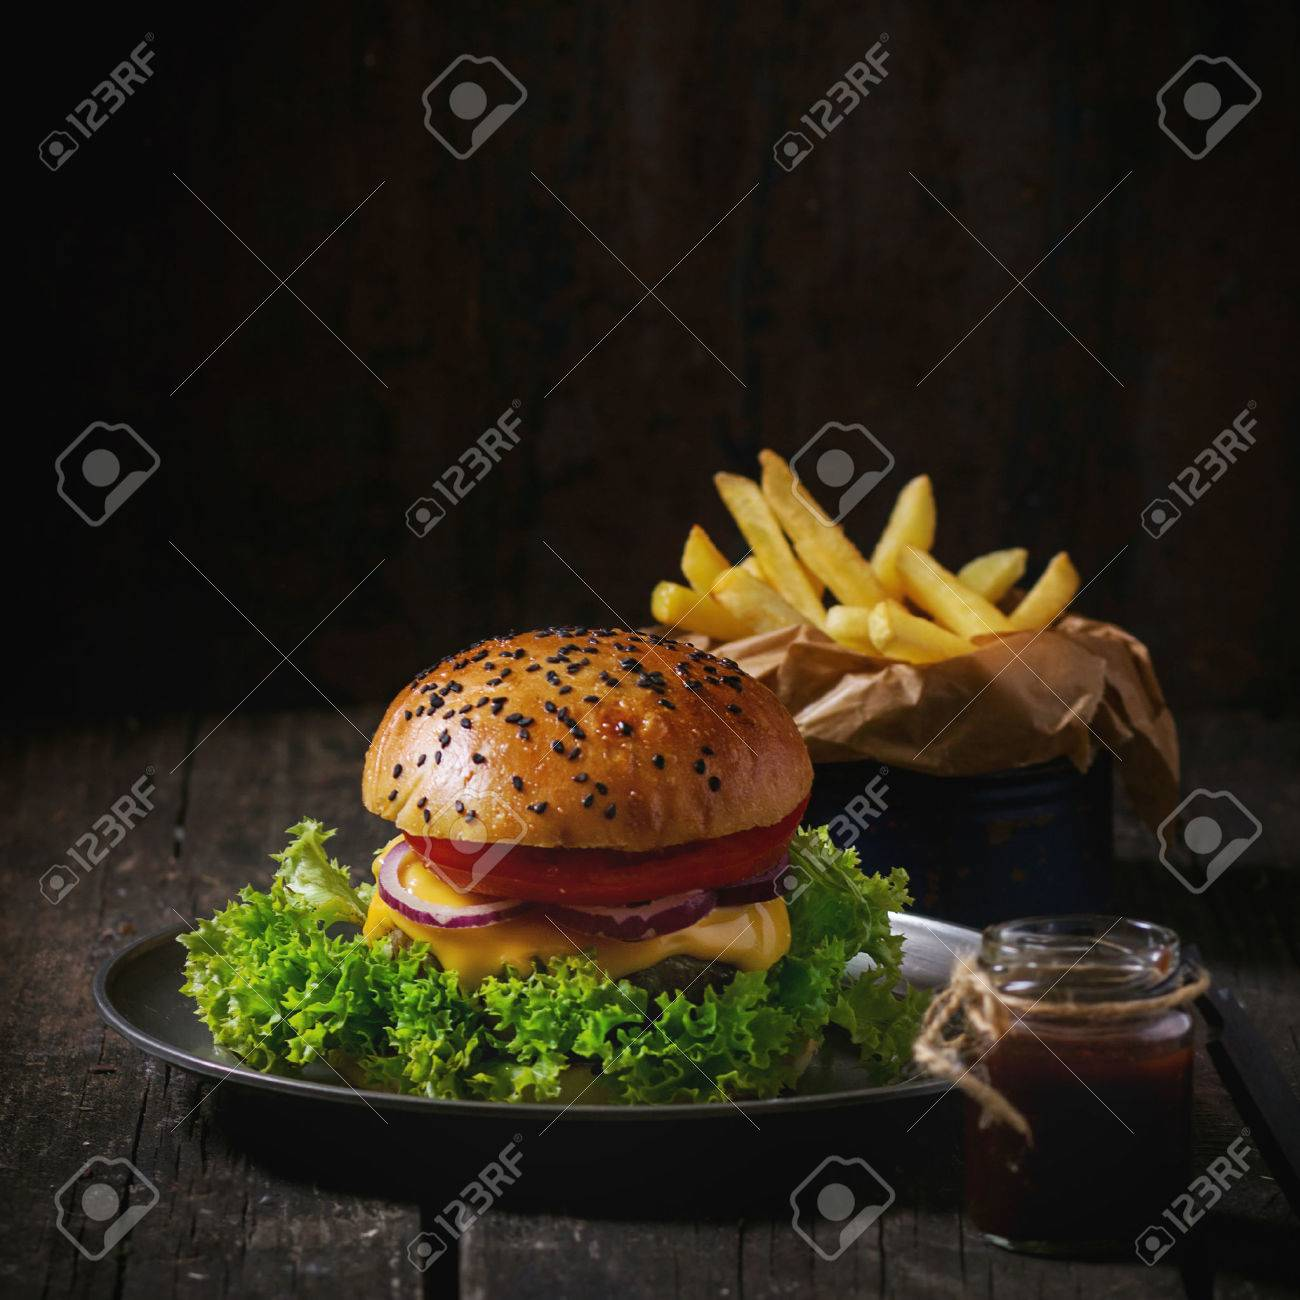 Fresh homemade hamburger with black sesame seeds in old metal plate with fried potatoes, served with ketchup sauce in glass jar over old wooden table with dark background. Dark rustic style. Square image - 51951880